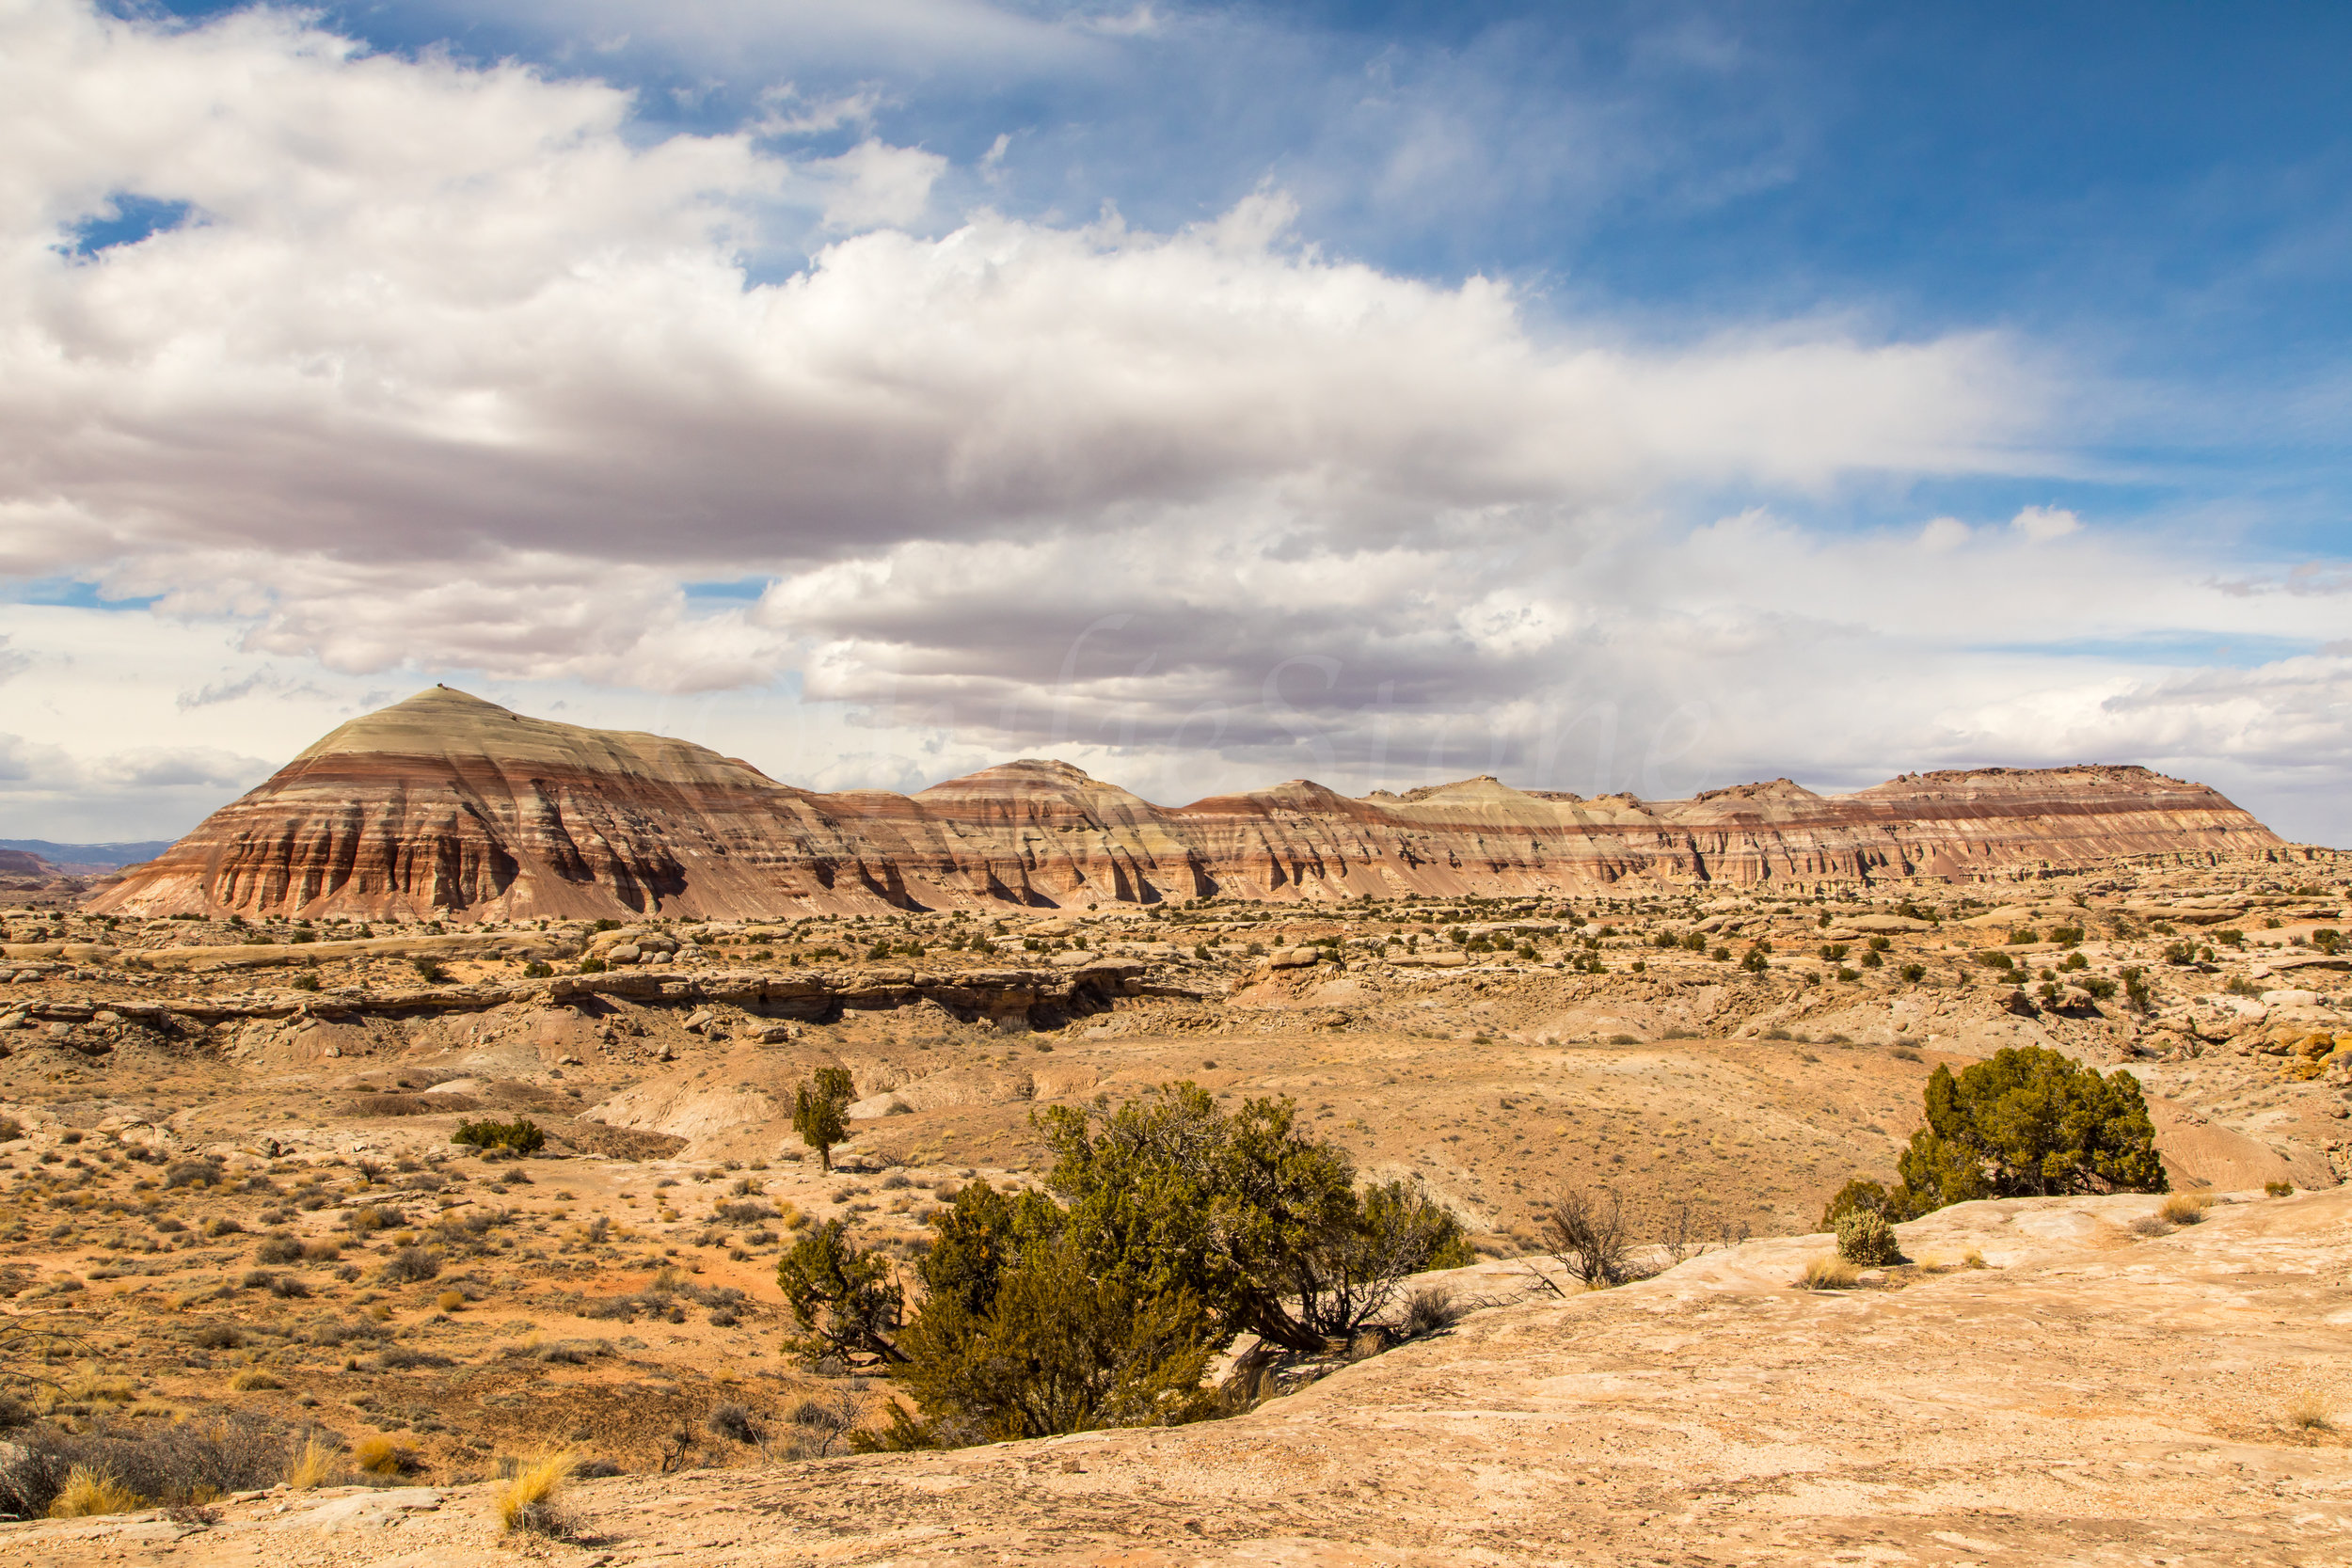 Capitol Reef National Park, Image # 2276